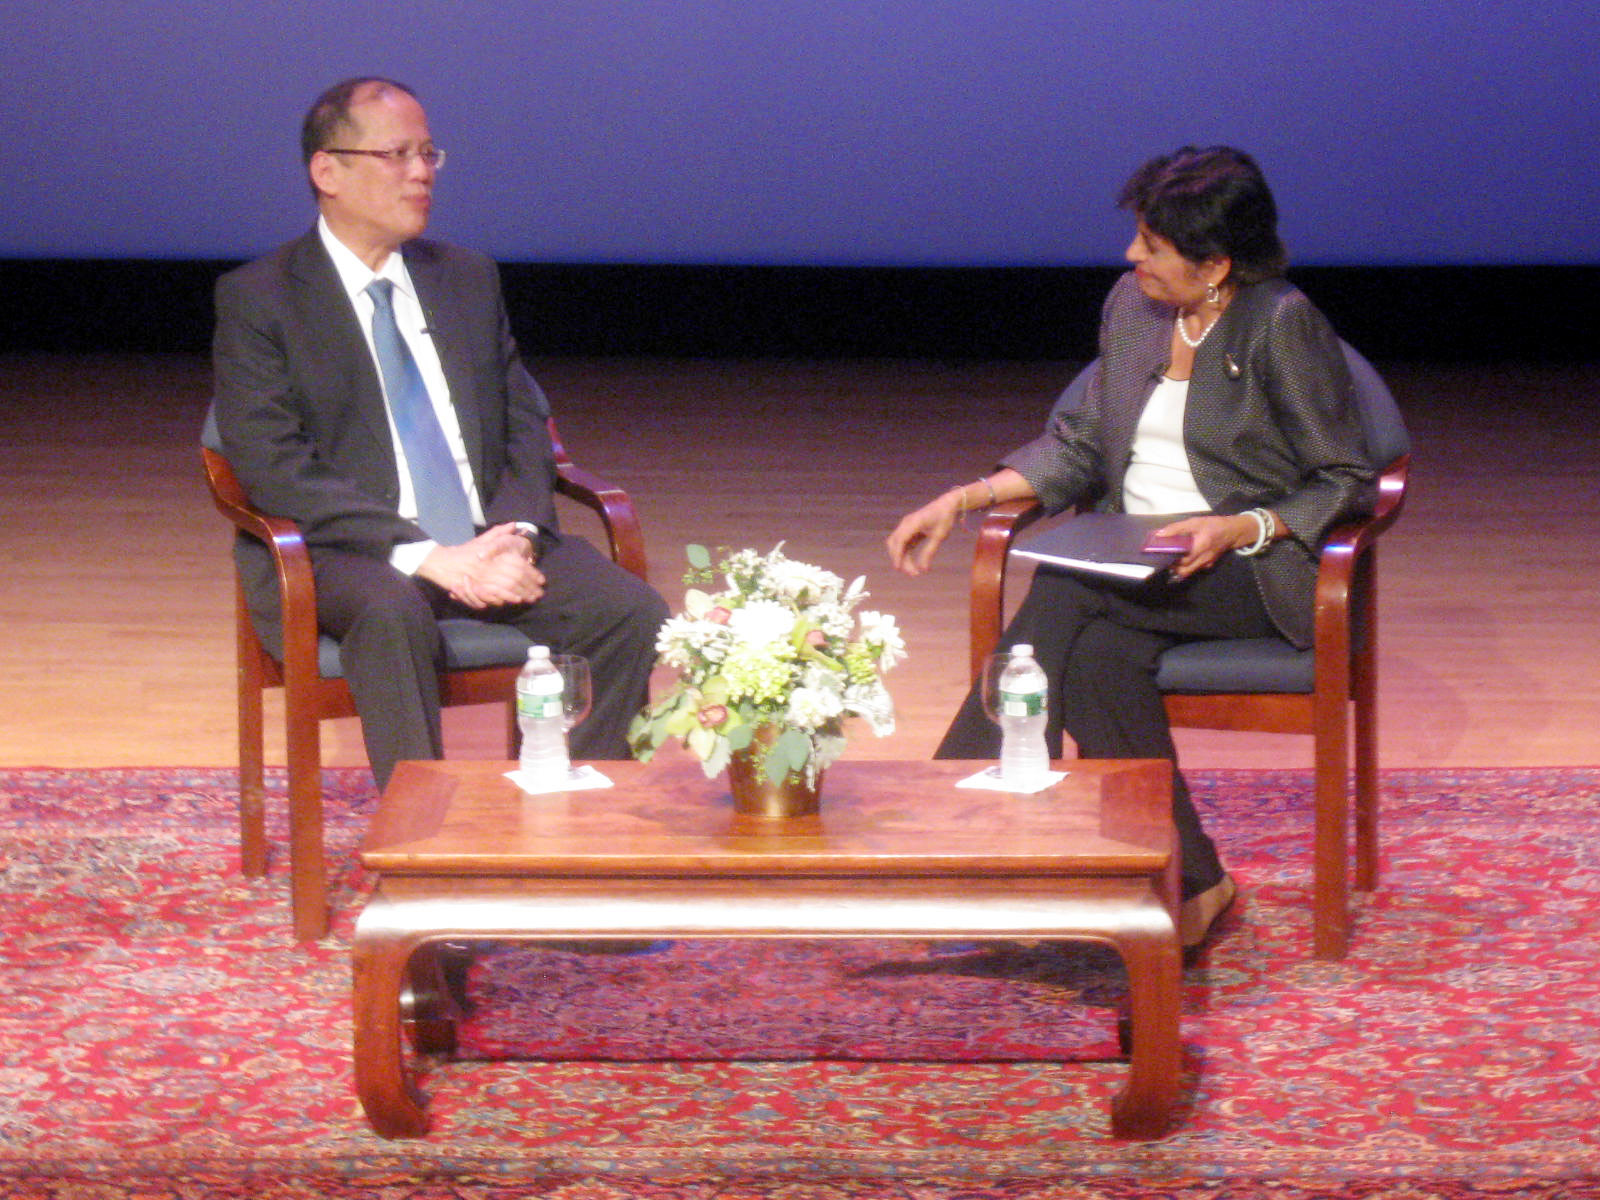 President Benigno Aquino III and Asia Society President Vishakha Desai in conversation on September 20, 2011 | Photo by RandyGener